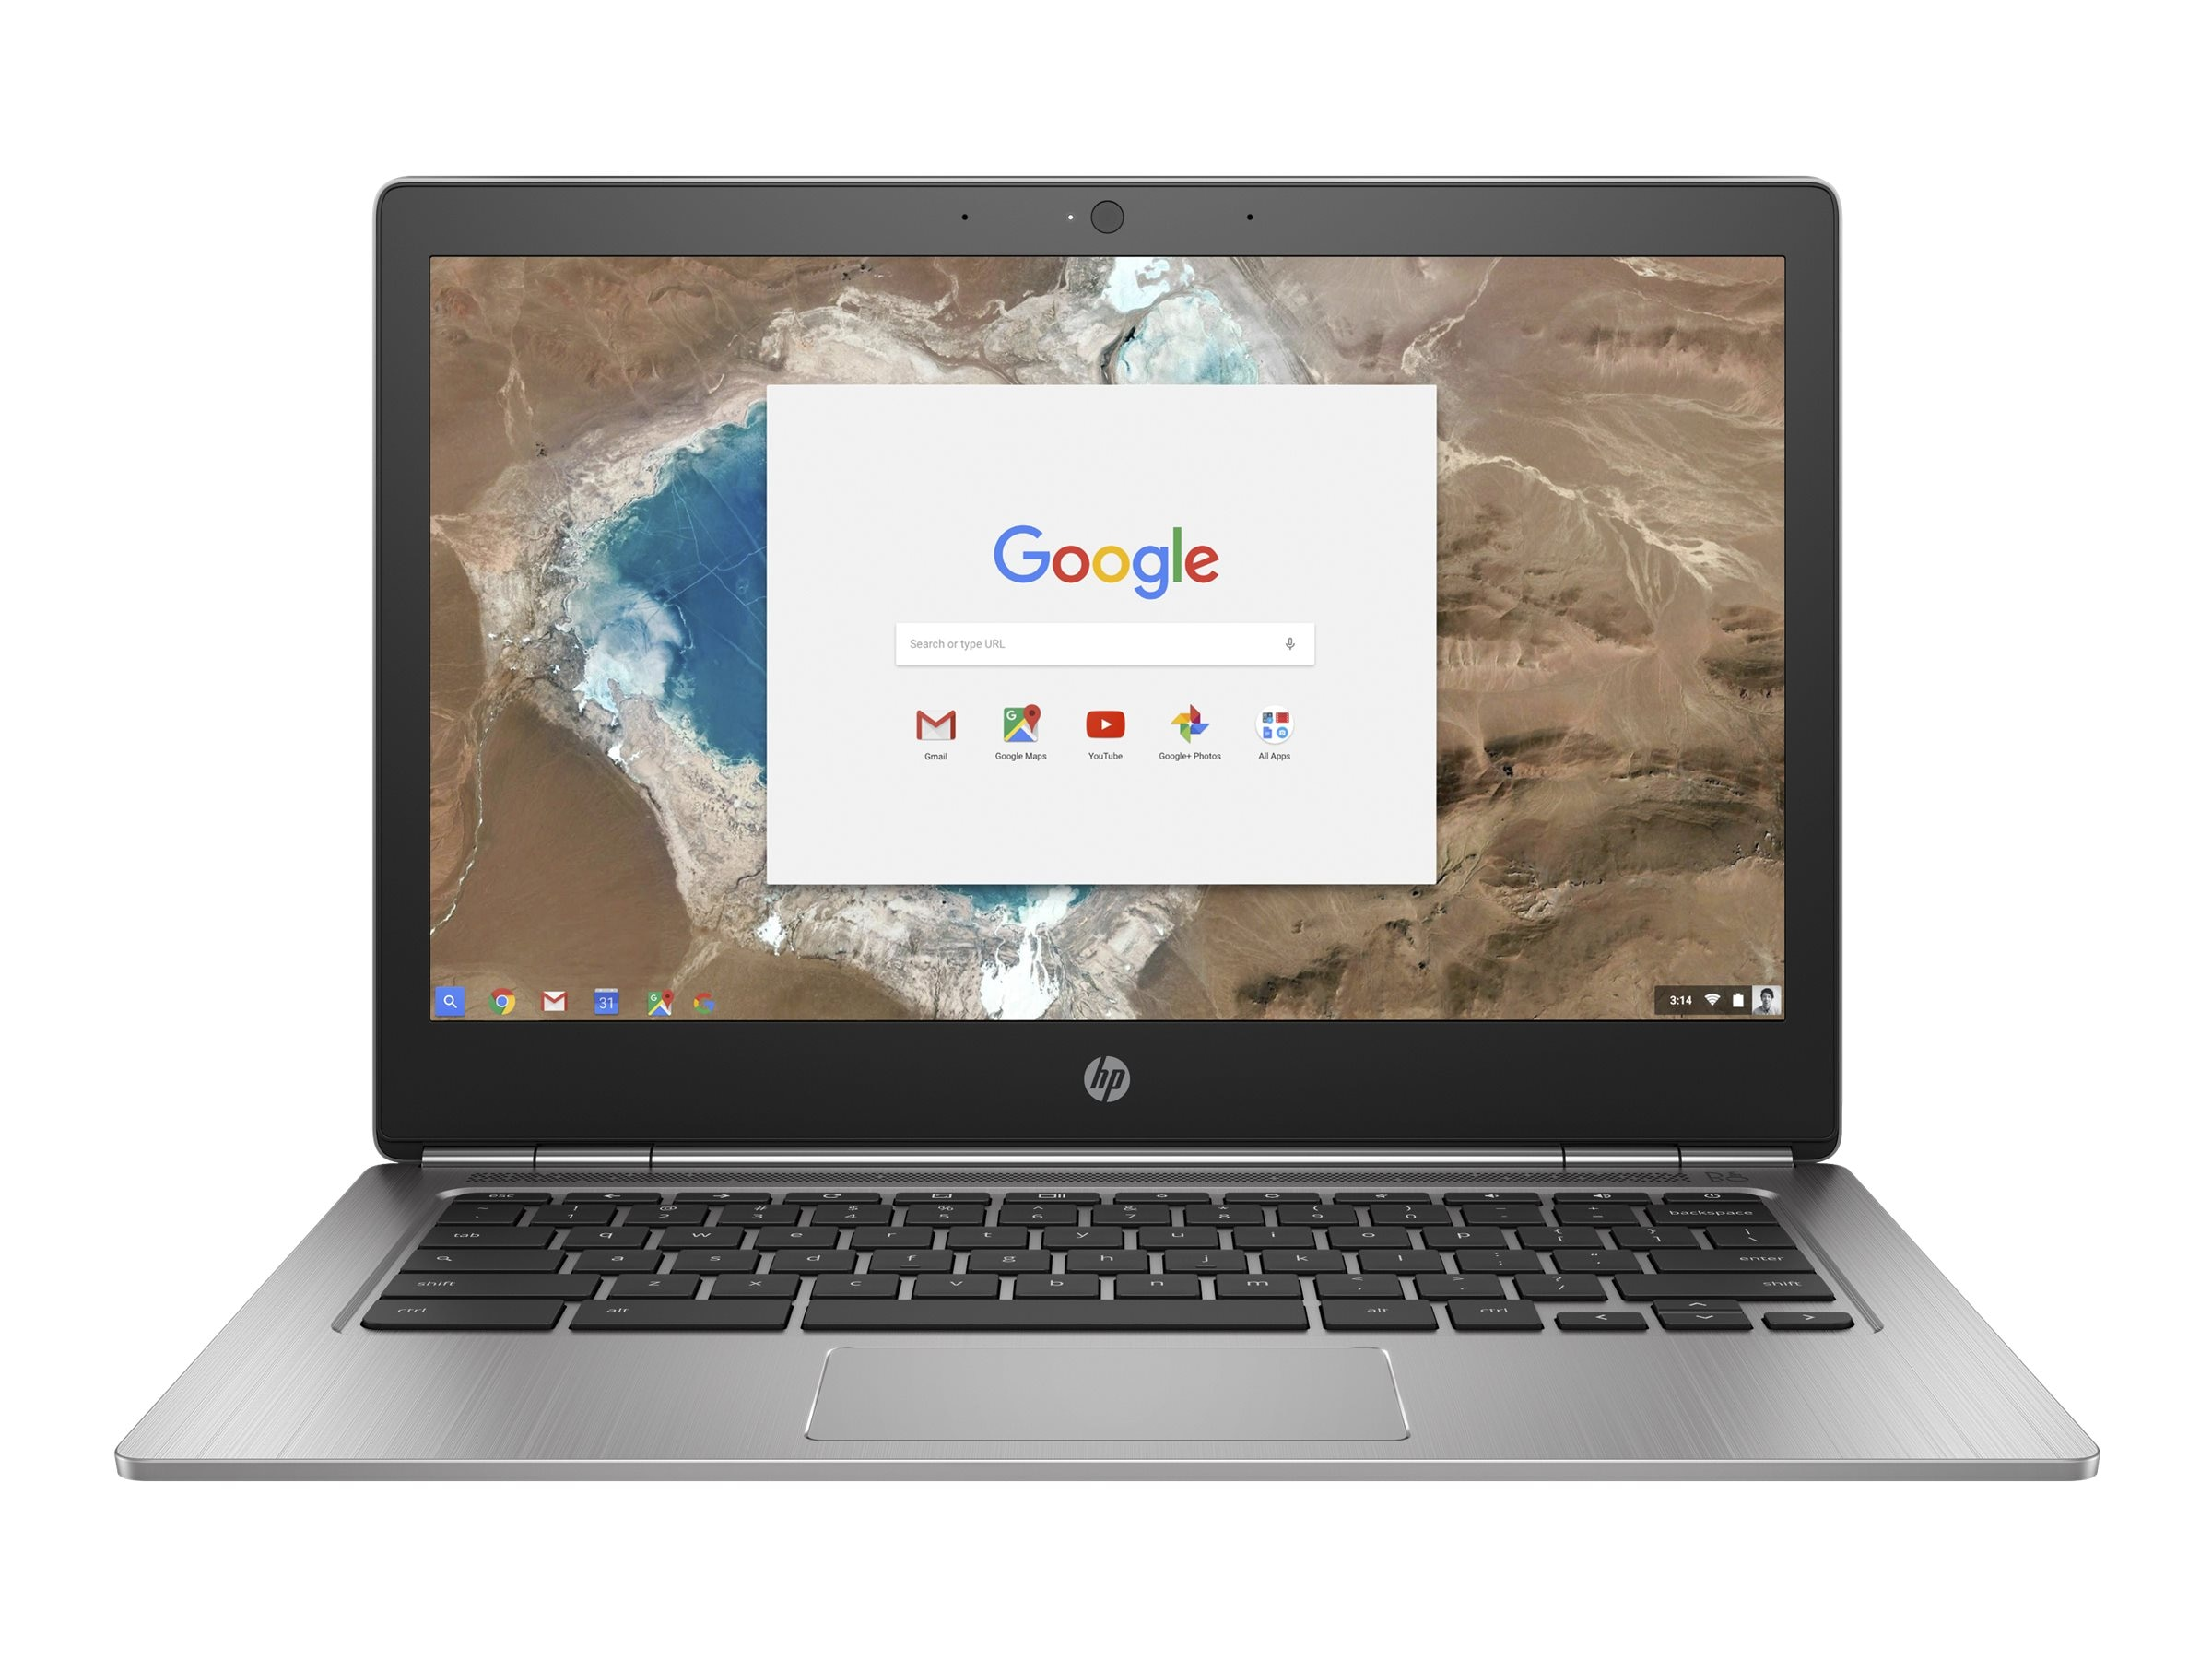 HP Chromebook 13 G1 1.2GHz Core m7 13.3in display, W0T02UT#ABA